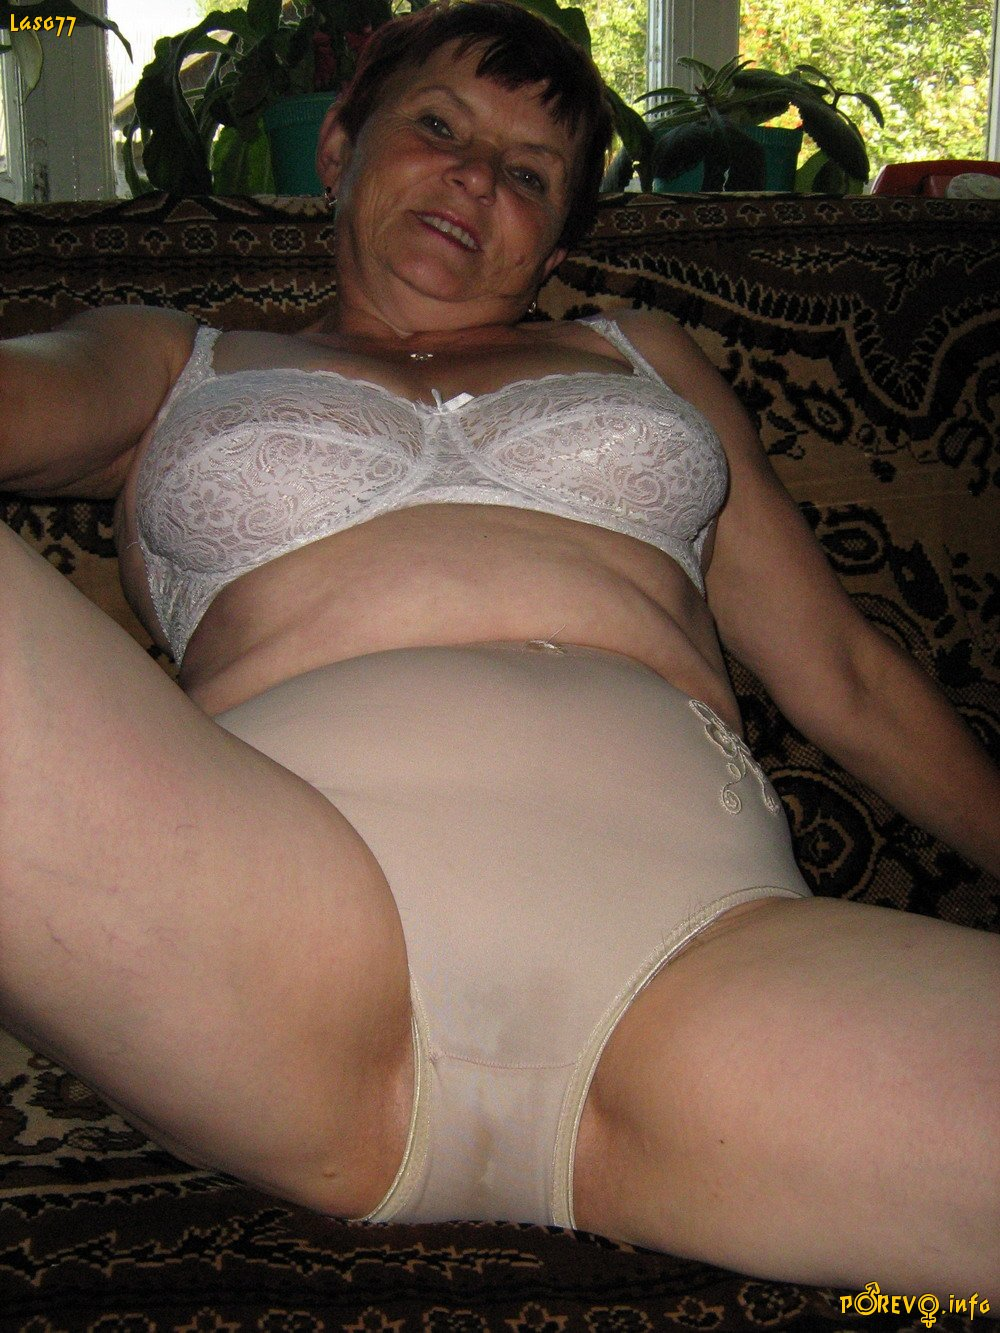 Young Hairy Pussy In Panties Tgp